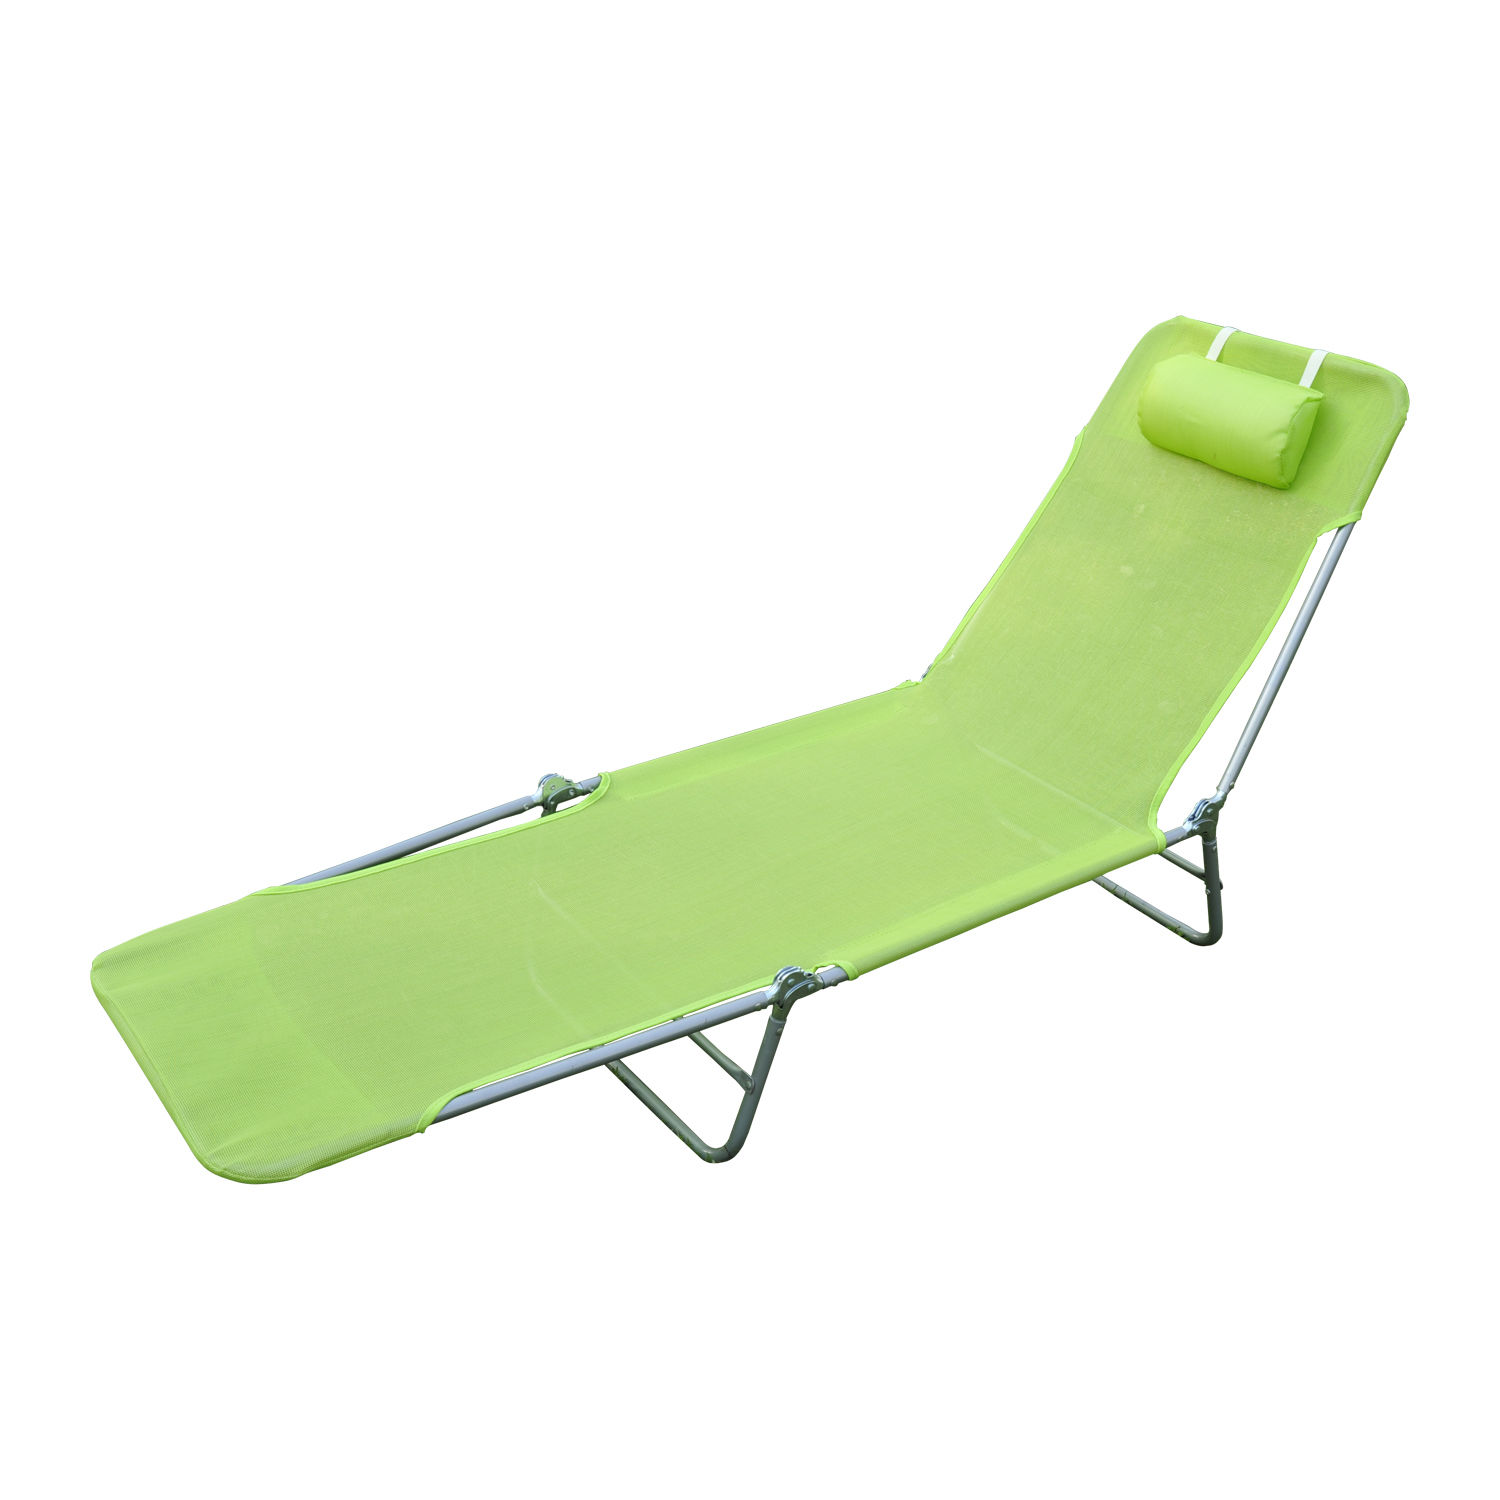 Superbe Details About Foldable Chaise Lounge Adjustable Patio Cot Reclining Beach  Chair W/Pillow Green